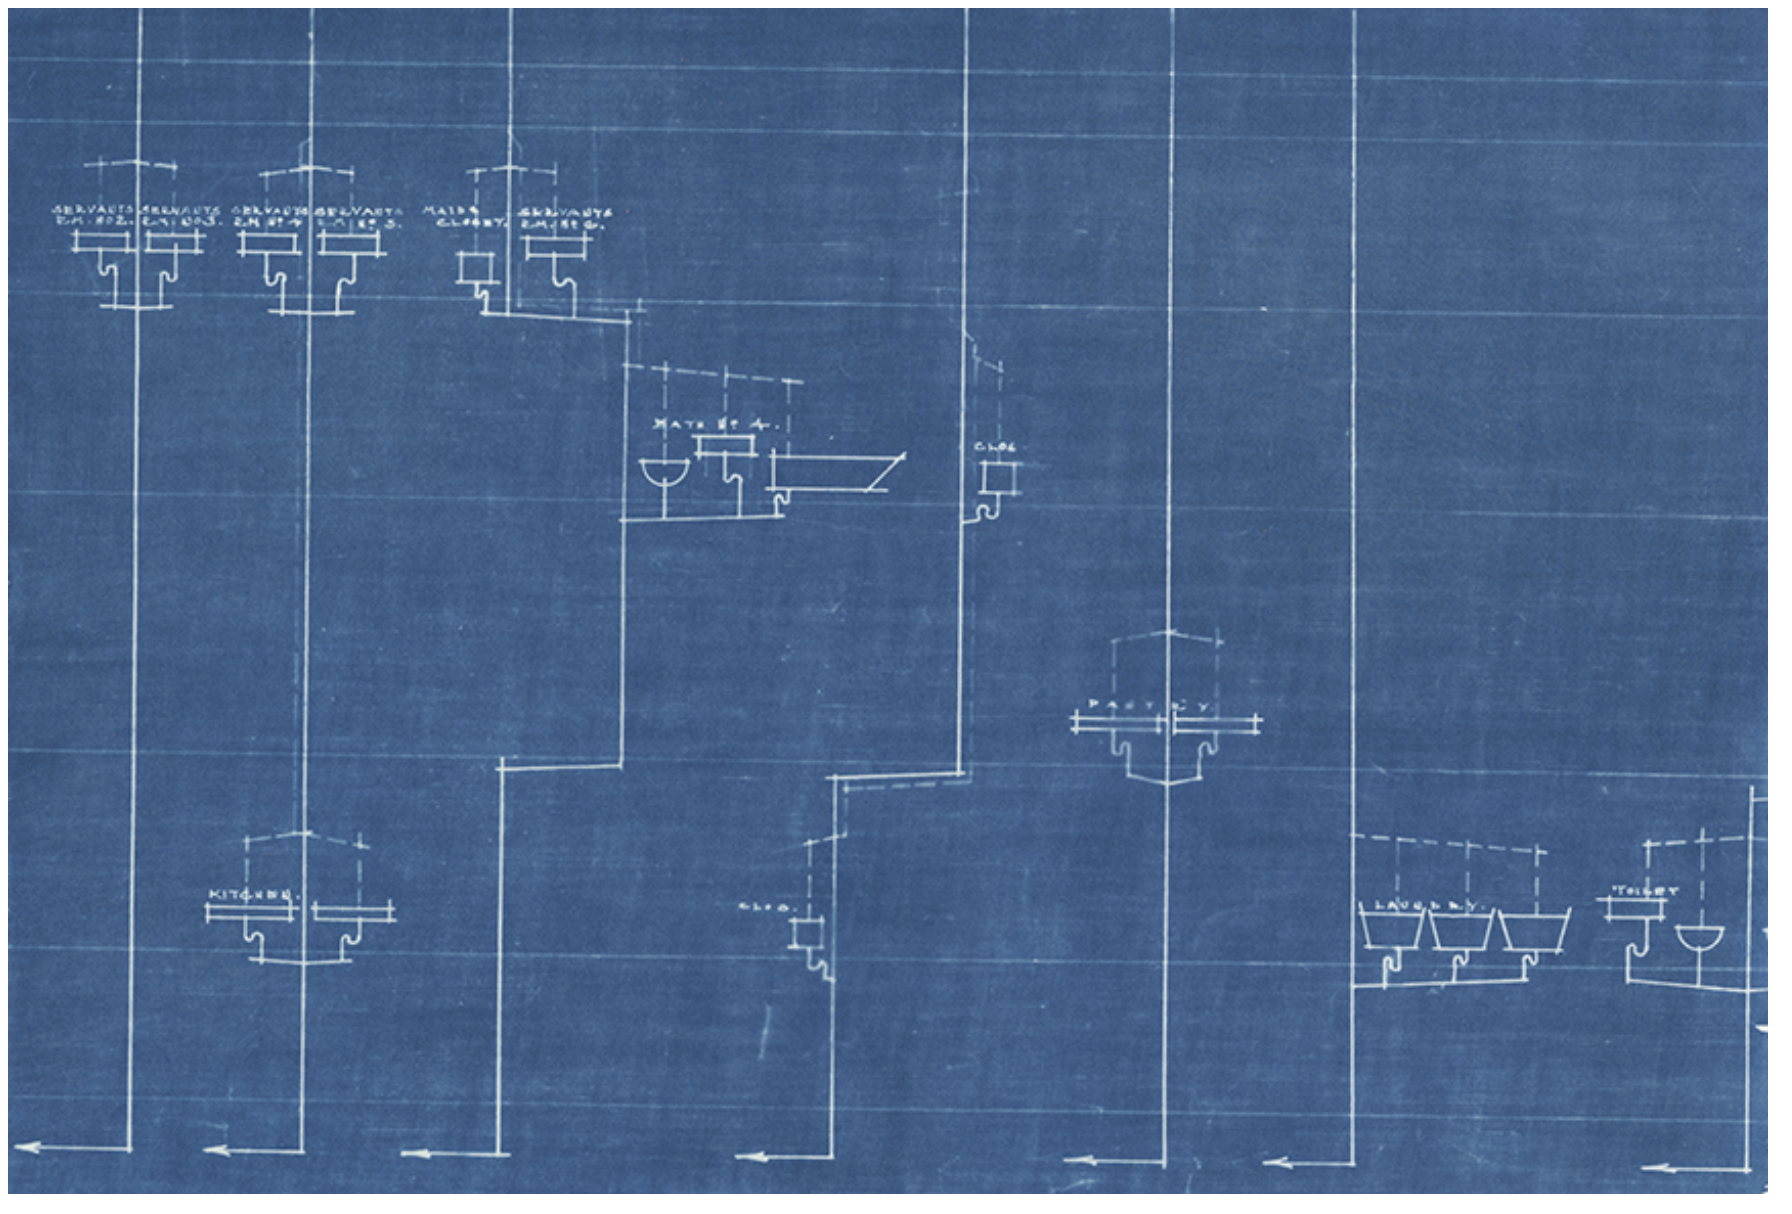 Image: Anatomy Of by Kioto Aoki. A sectional cyanotypes created from original architectural drawings of the Countiss Mansion from 1916. The image is blue and white. Courtesy of the artist.